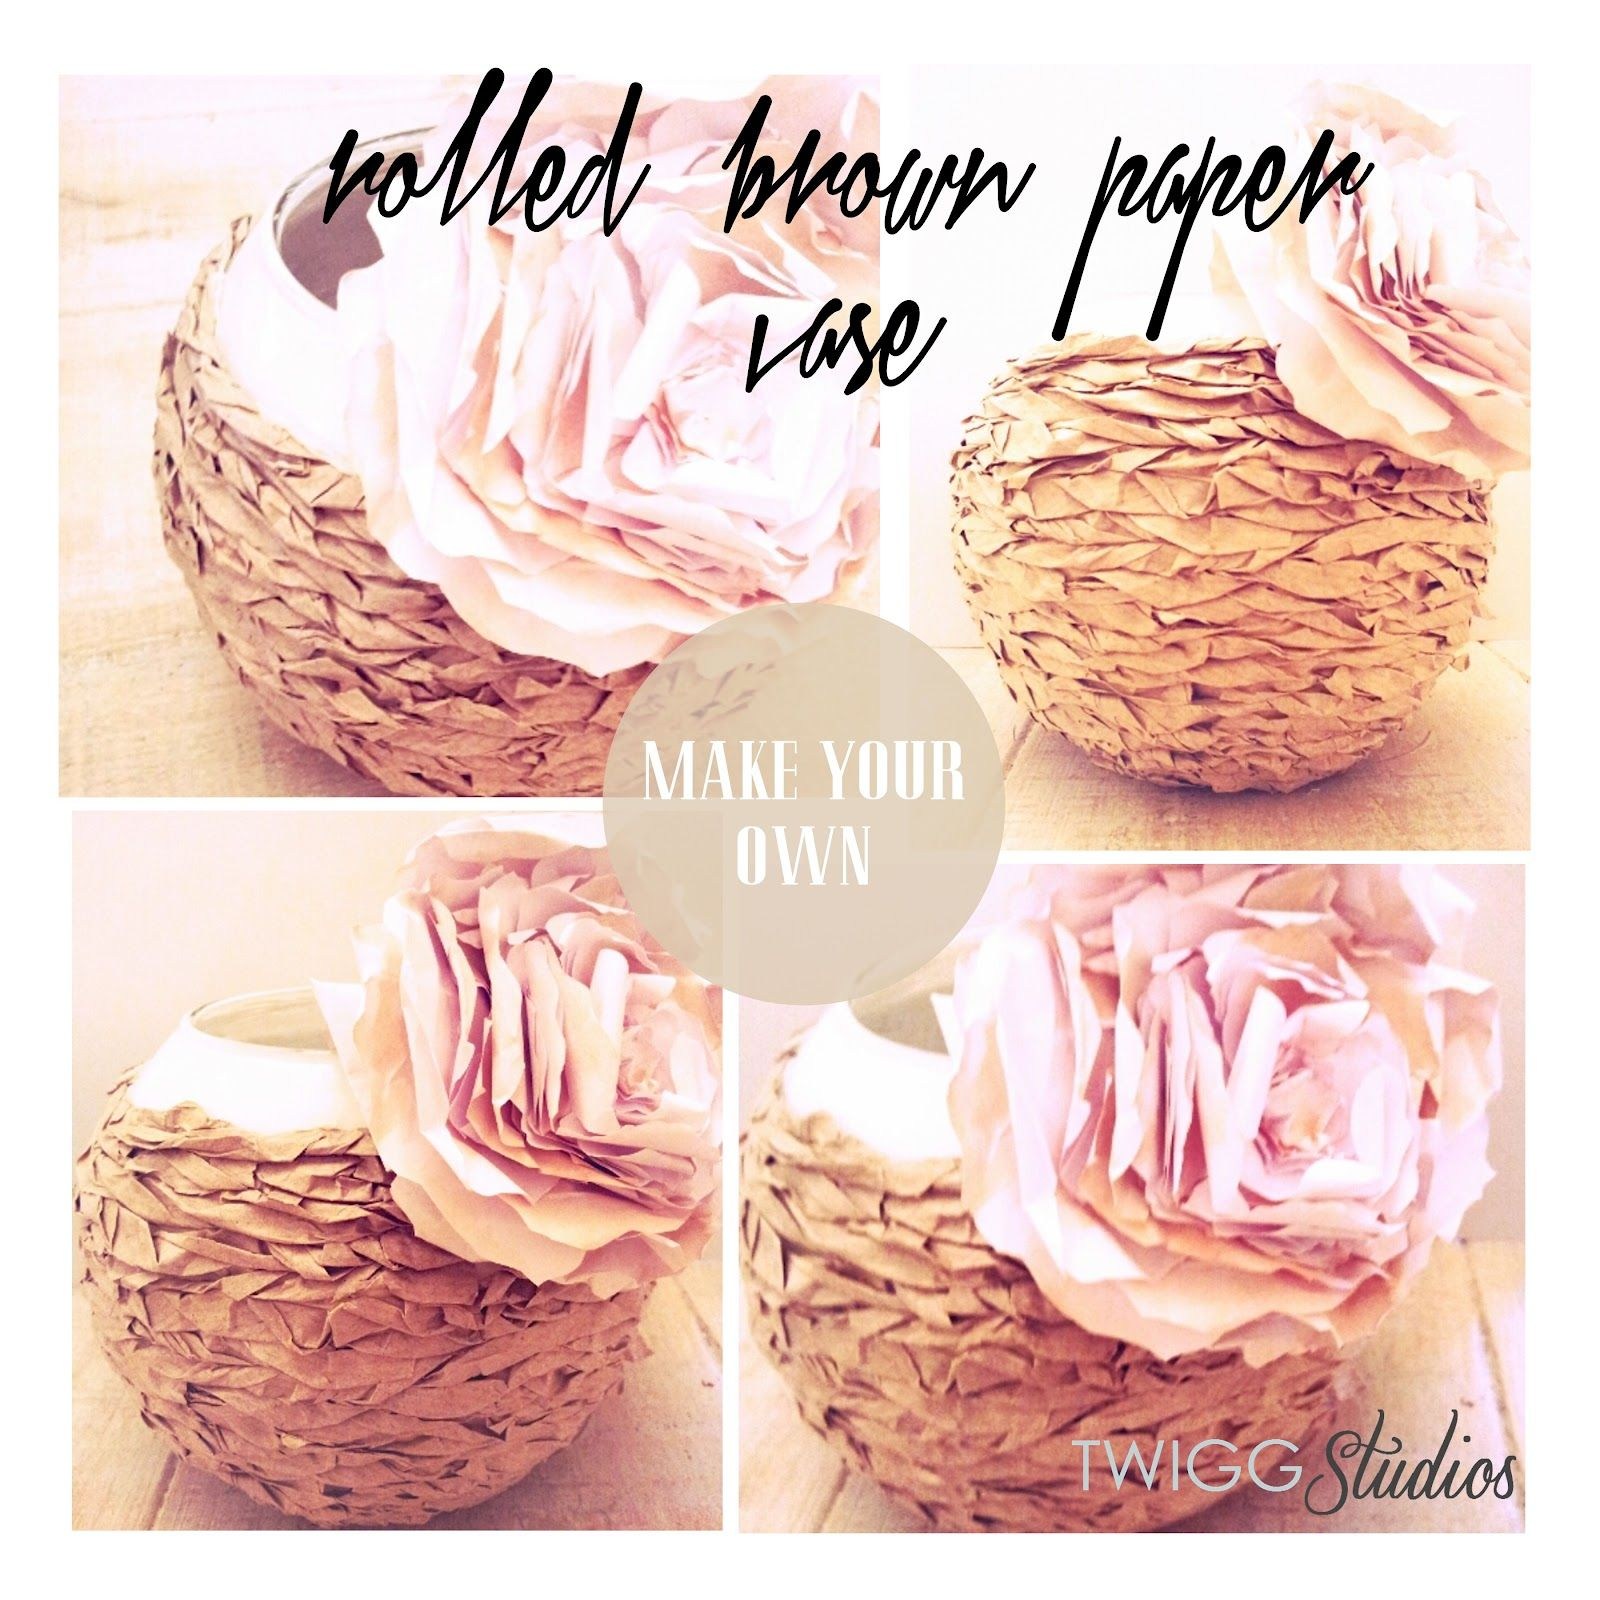 Twigg Studios Rolled Brown Paper Vase Diy Crafts Pinterest